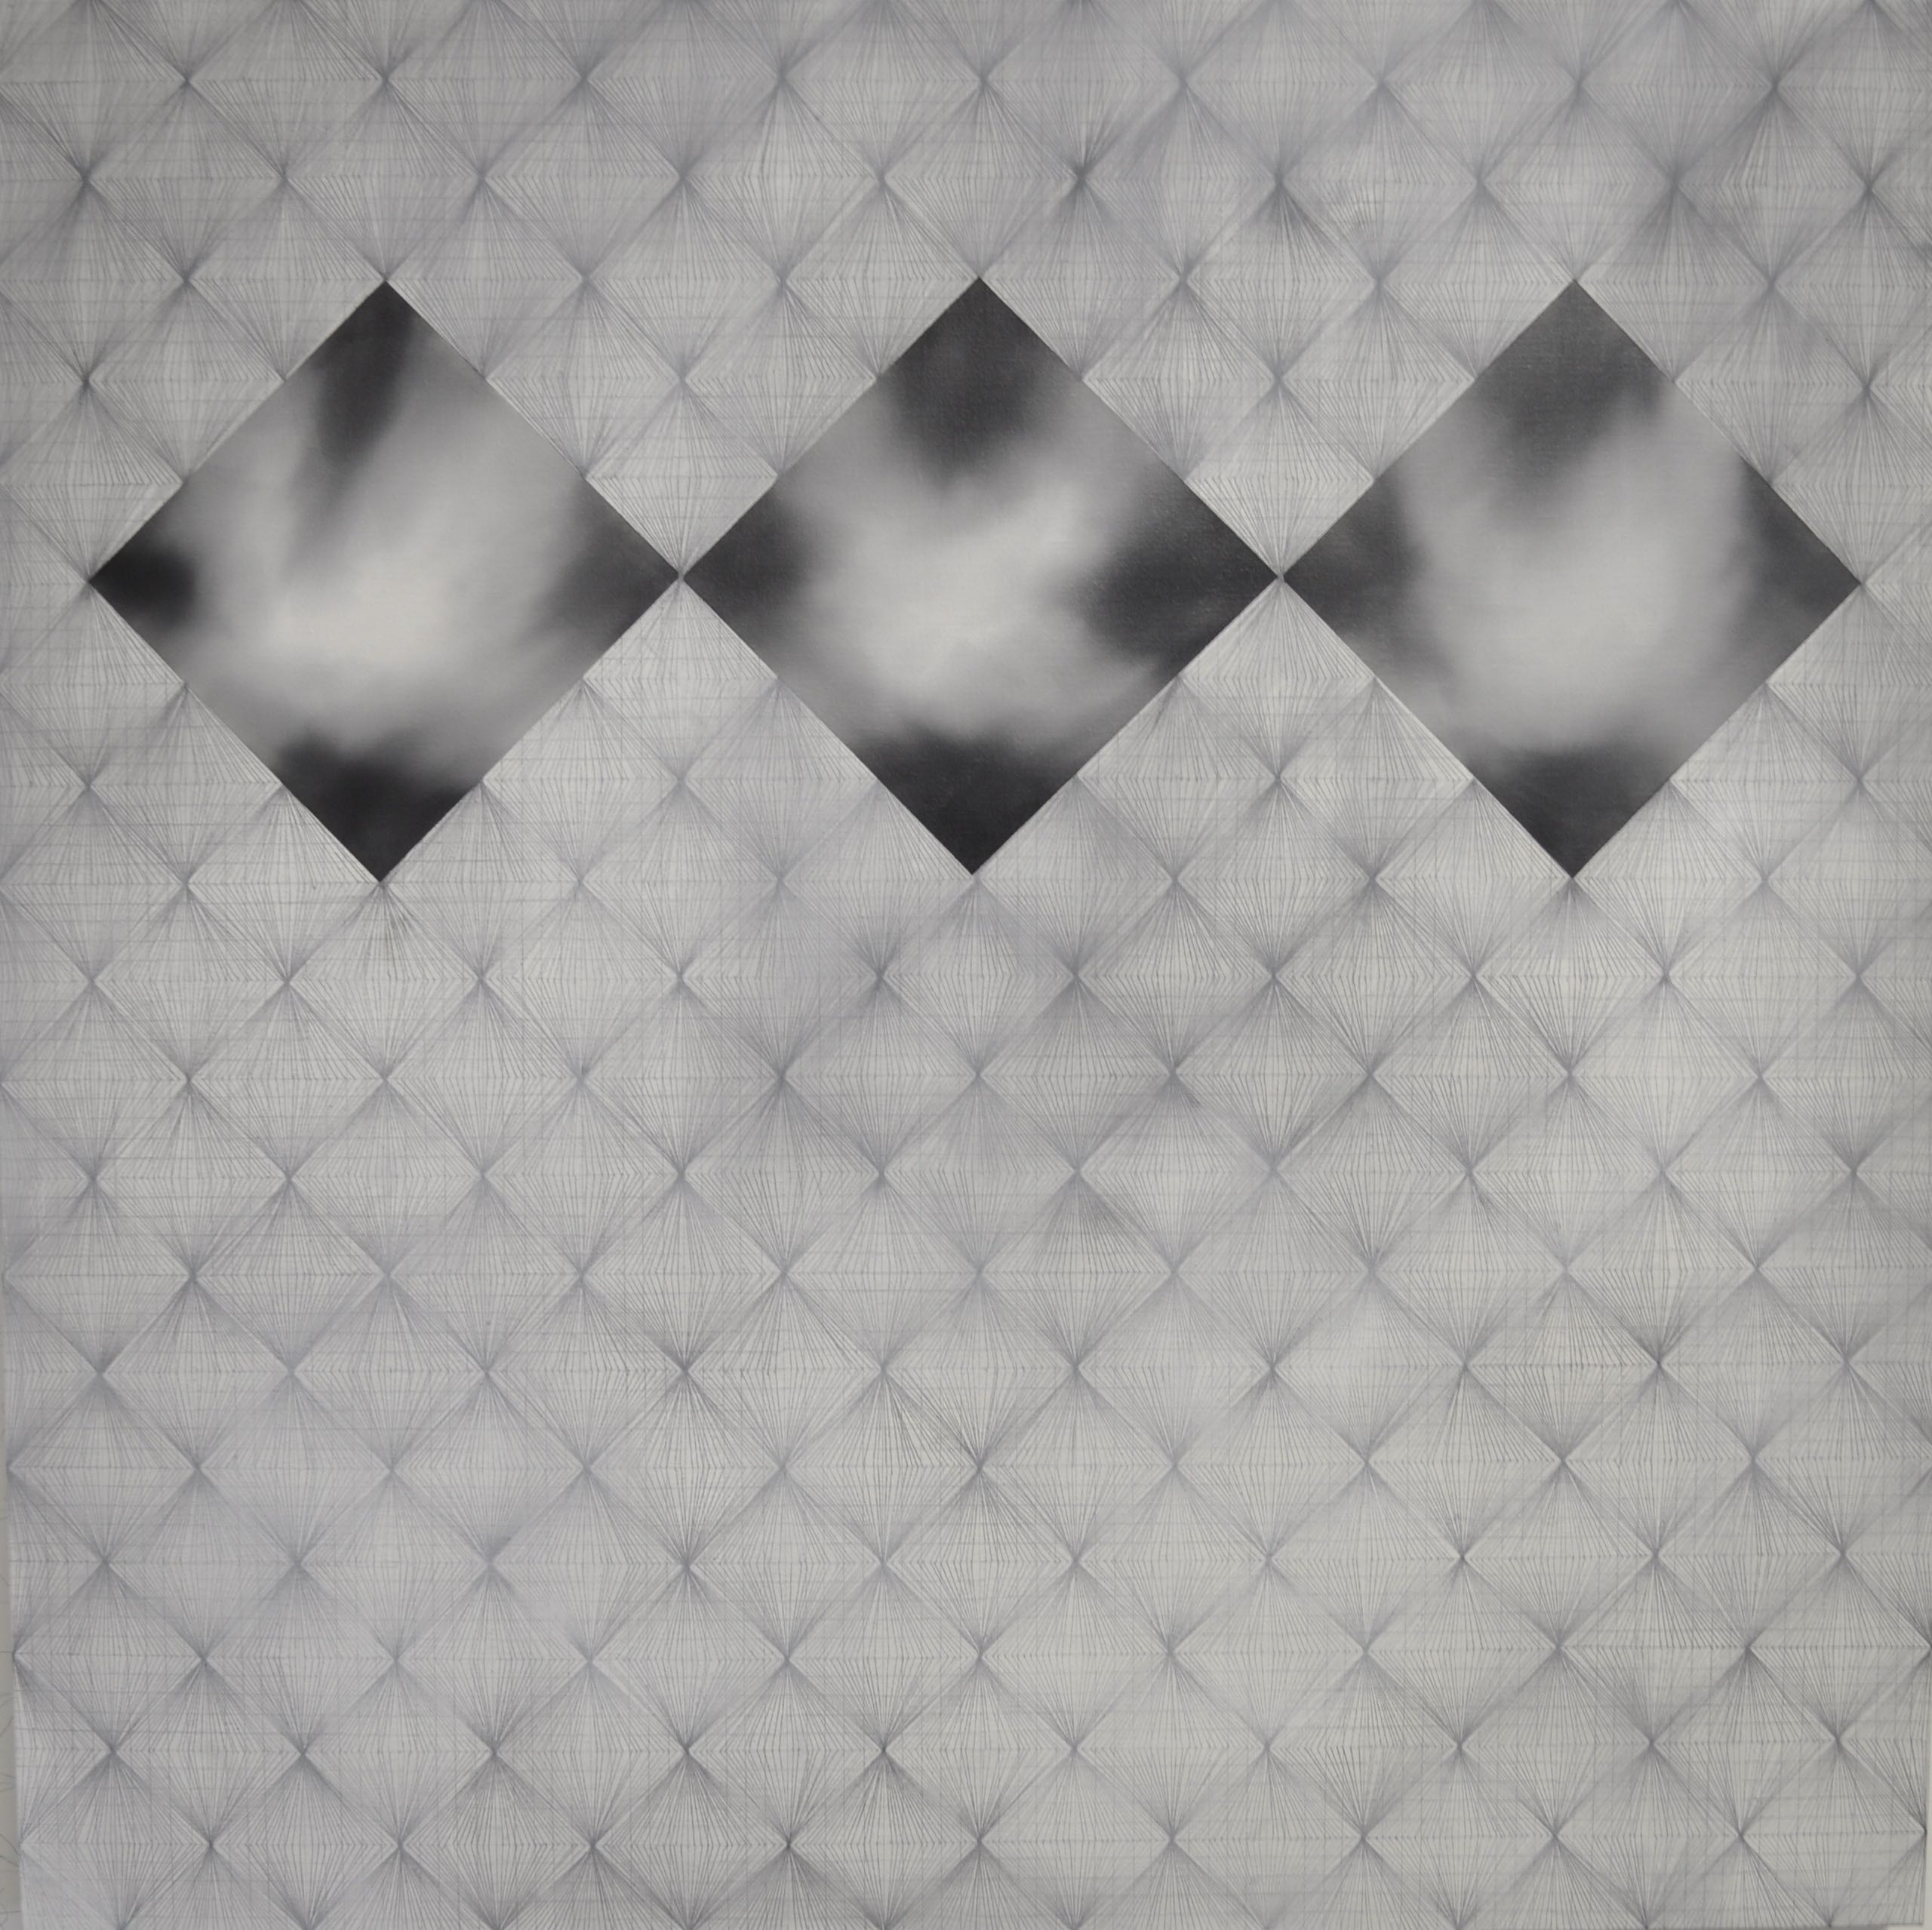 Tonal Composition in Black White & Grey 100x100 Oil & Graphite on Canvas 2009.jp